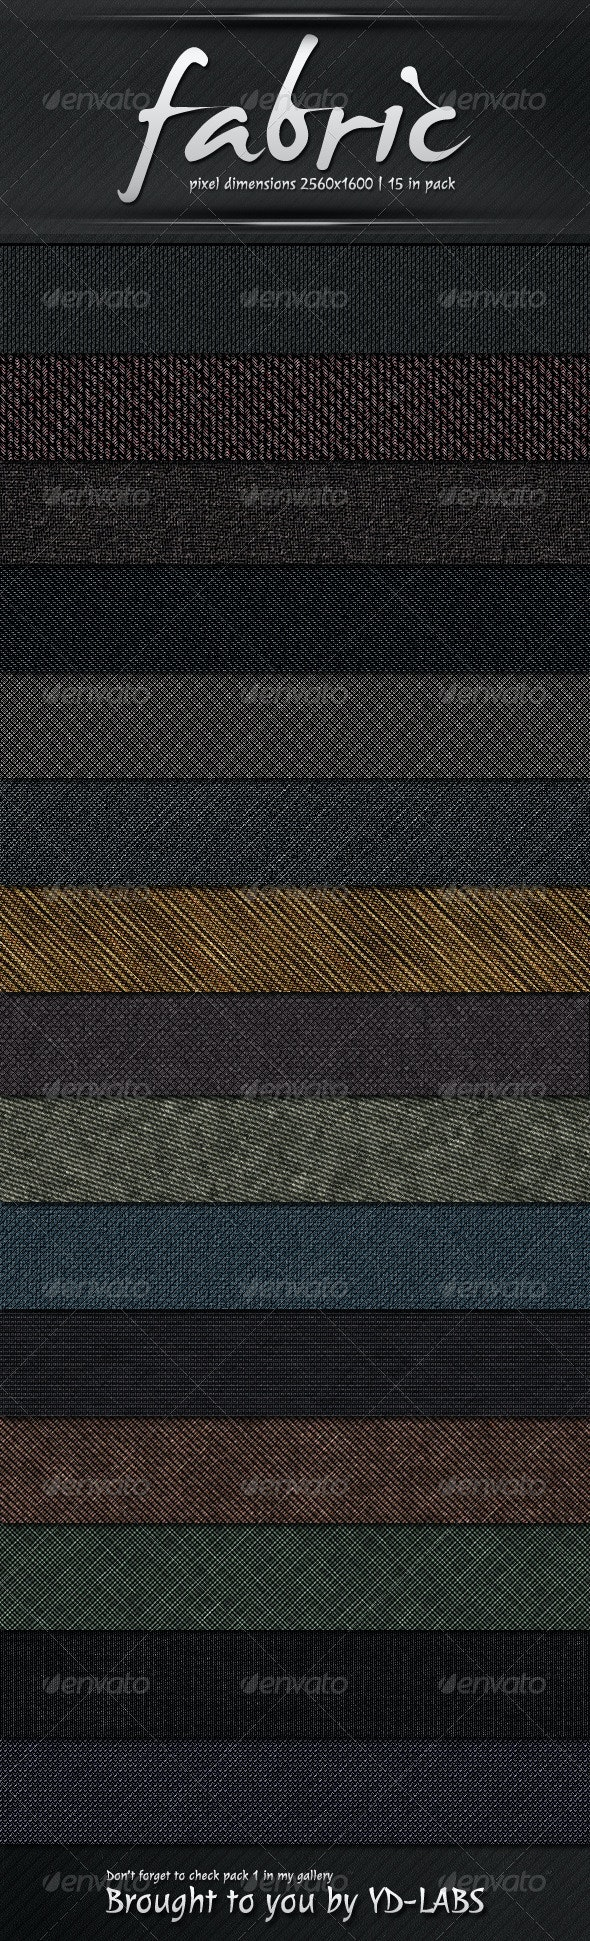 Fabric Pack 2 - Fabric Textures